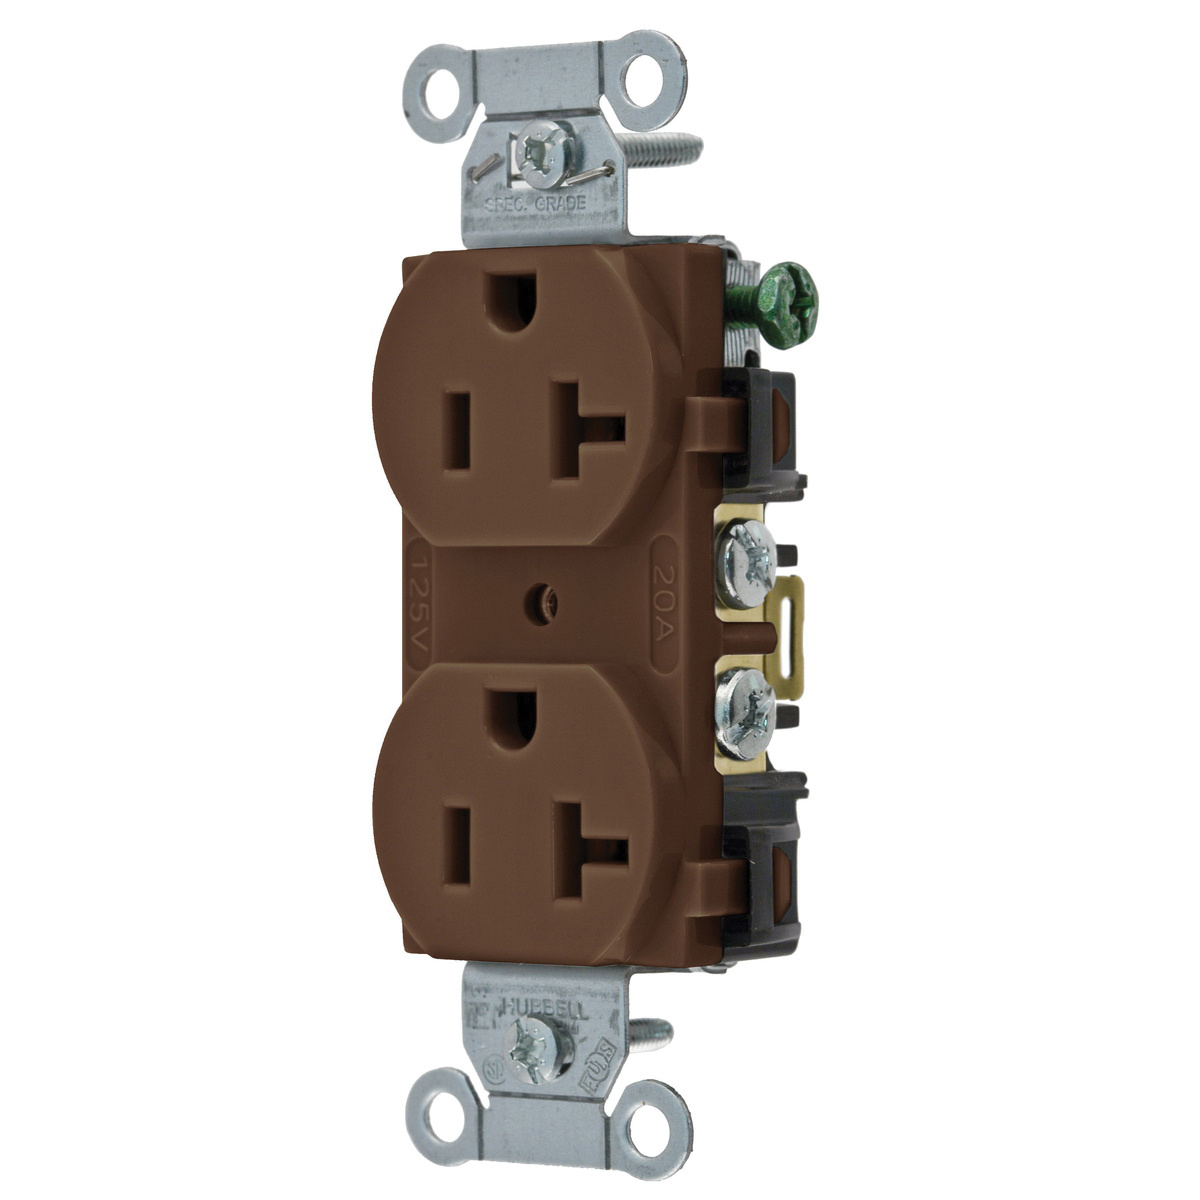 hight resolution of hubbell wiring br20 traditional straight blade duplex receptacle 2 pole 3 wire 125 volt 20 amp nema 5 20r brown straight blade receptacles wiring